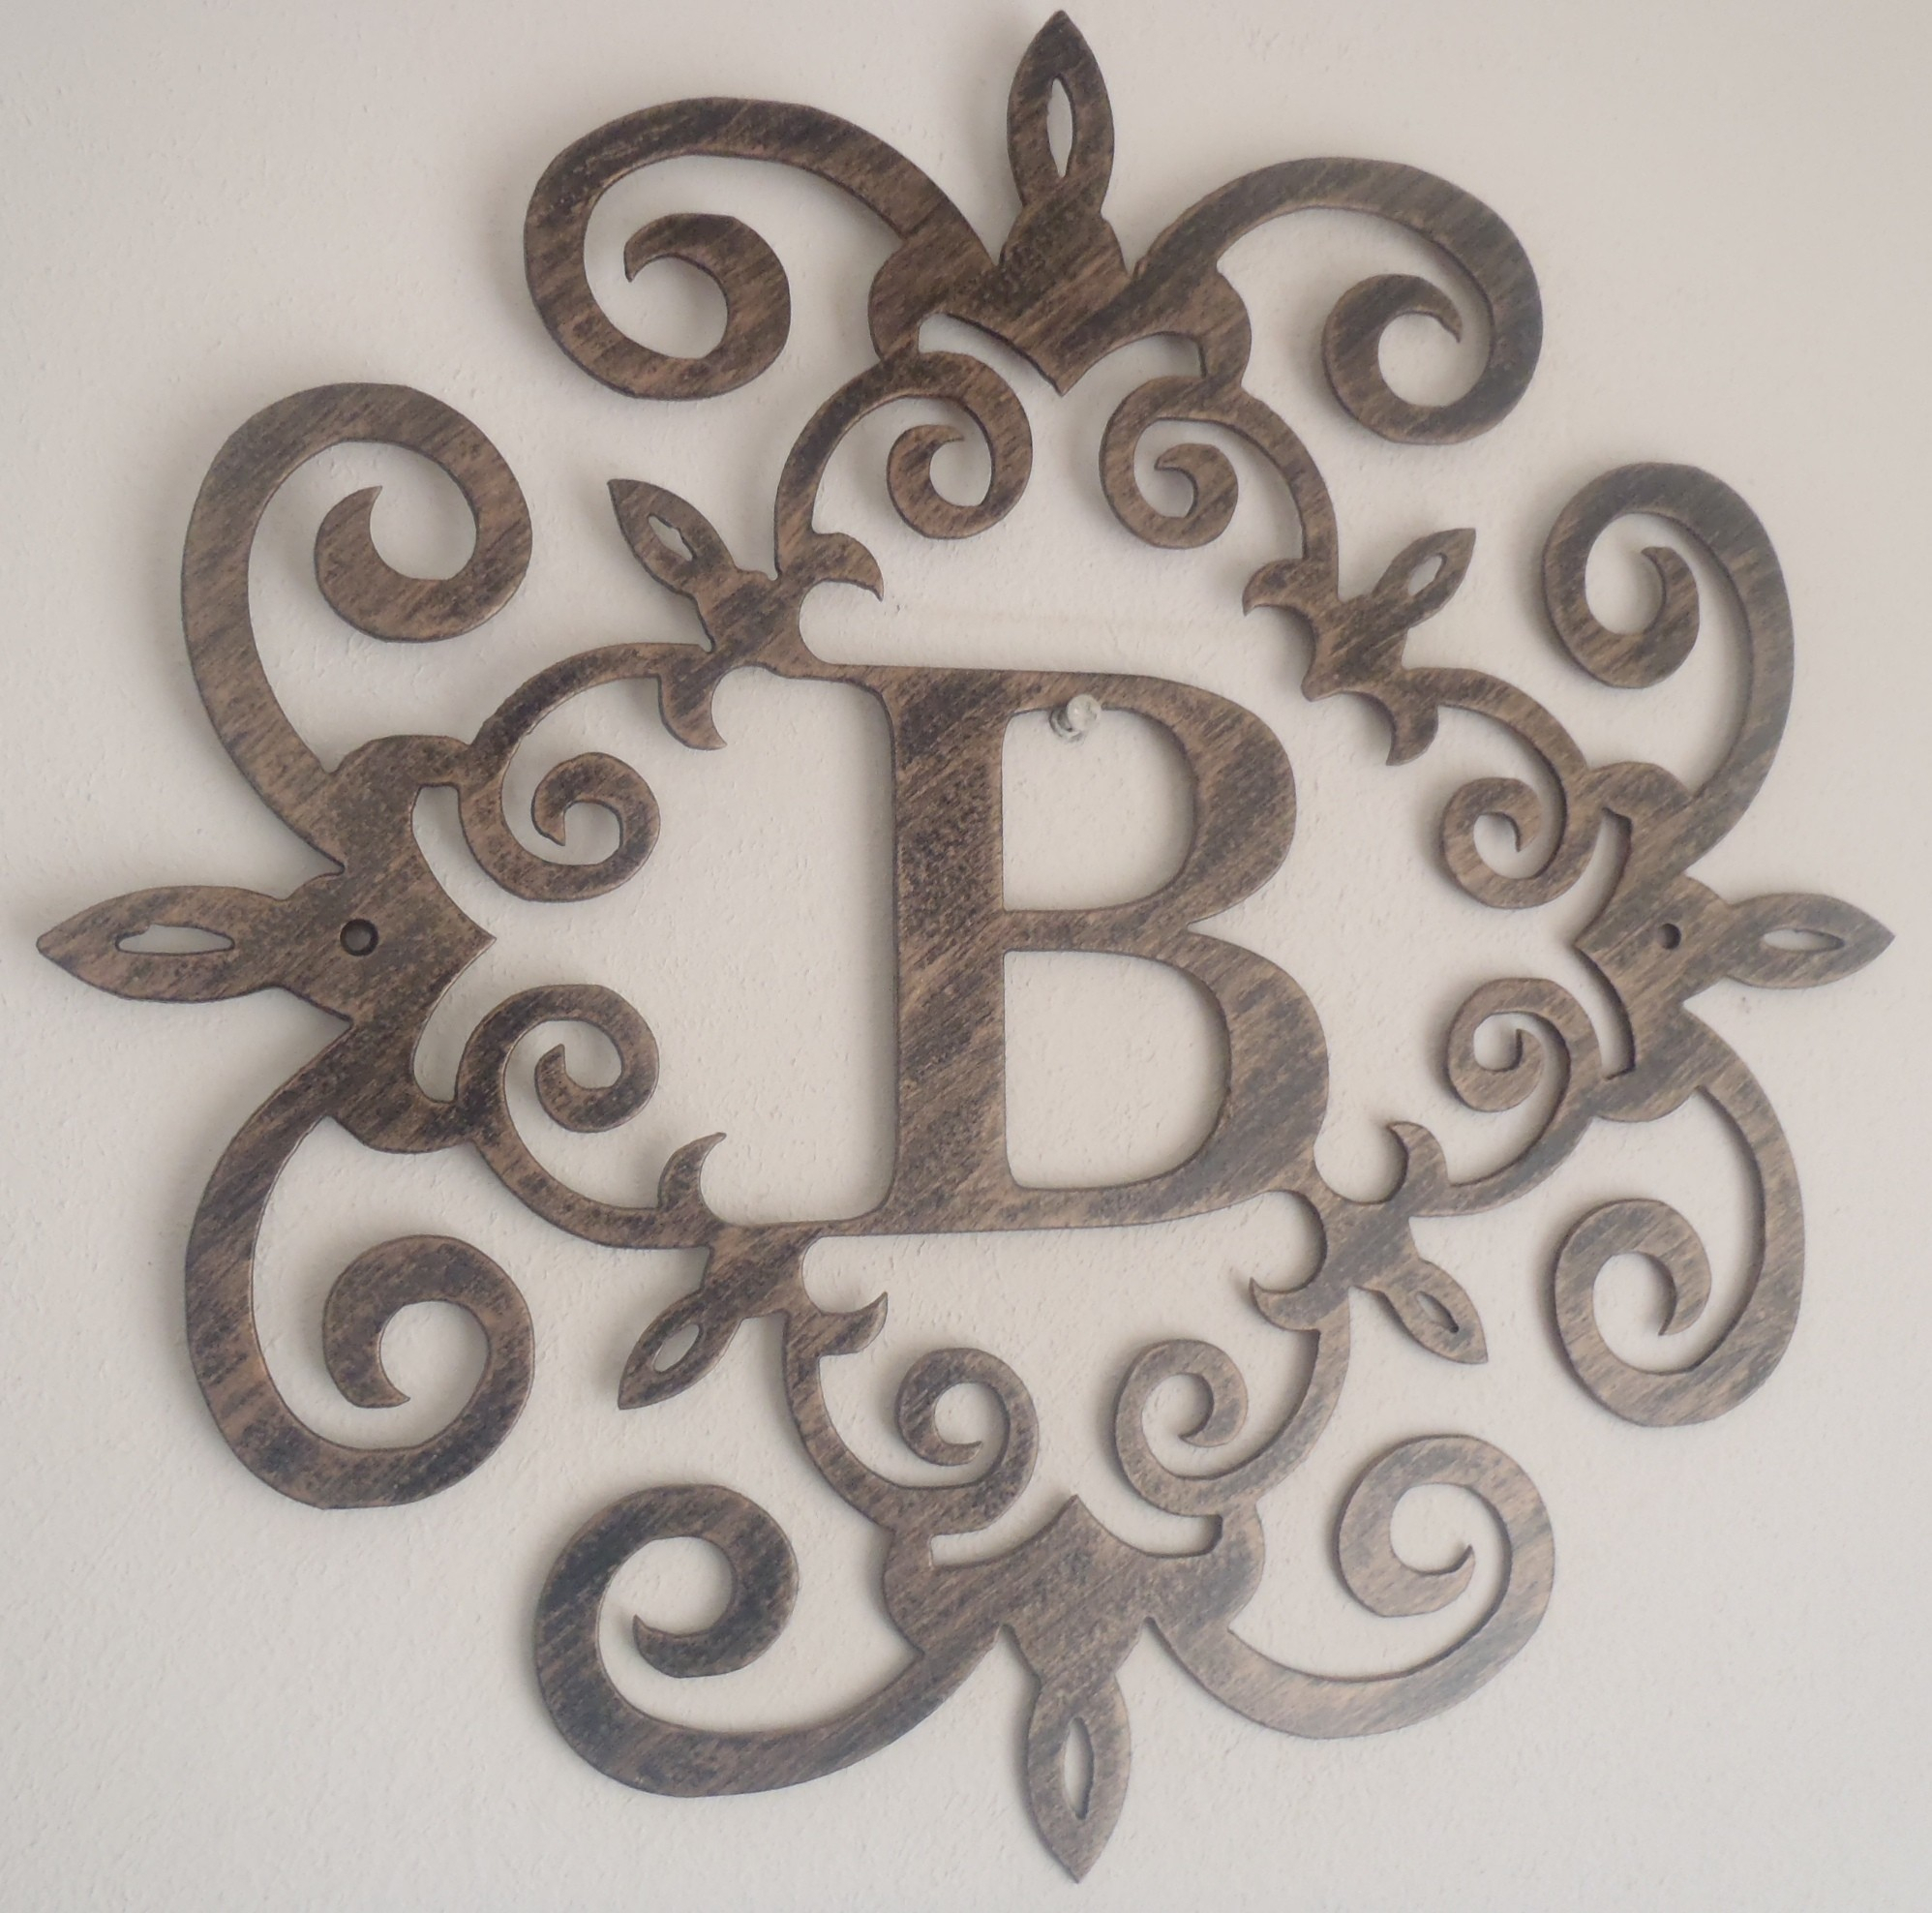 Decorating Large Metal Letters For Wall Decor (Gallery 15 of 20)